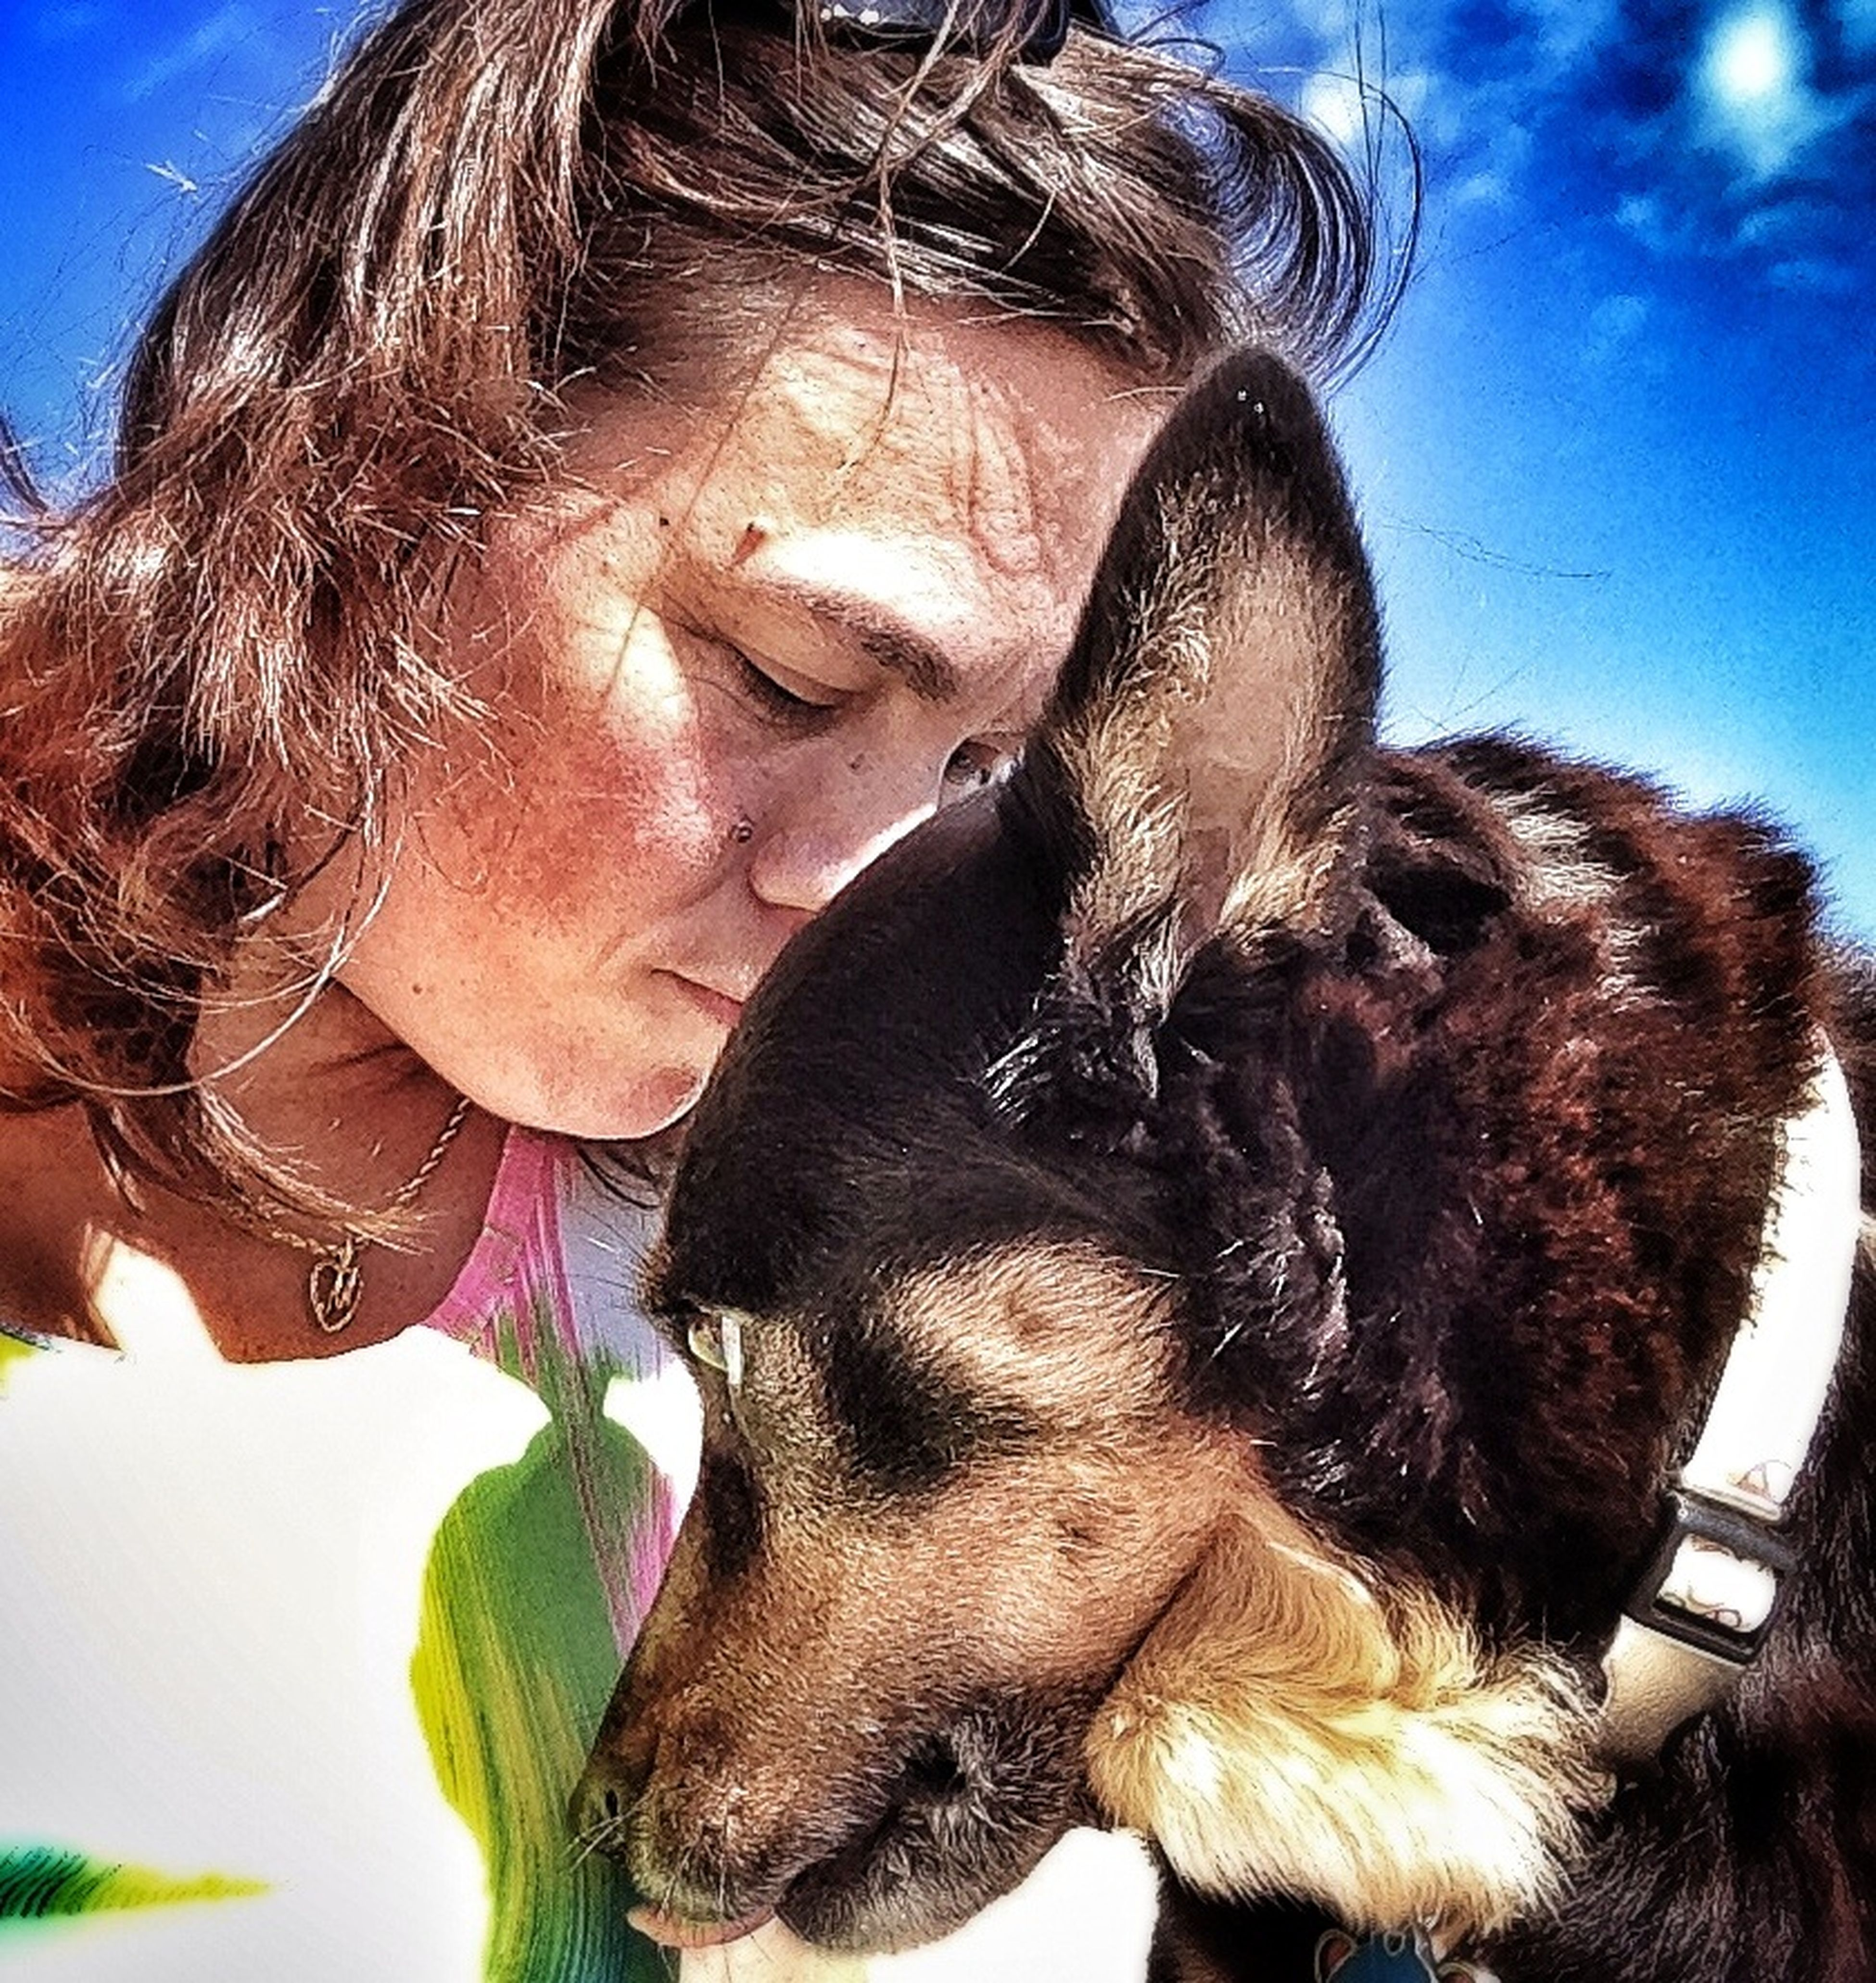 Capture The Moment For Love Of Dog Last Days Pet Photography  IPhoneography Damn You Cancer Sweetpea  I usually don't take selfies, but I captured this moment between me and my dog on her last trip to the beach two days before she lost her battle to cancer. RIP sweet Riley.